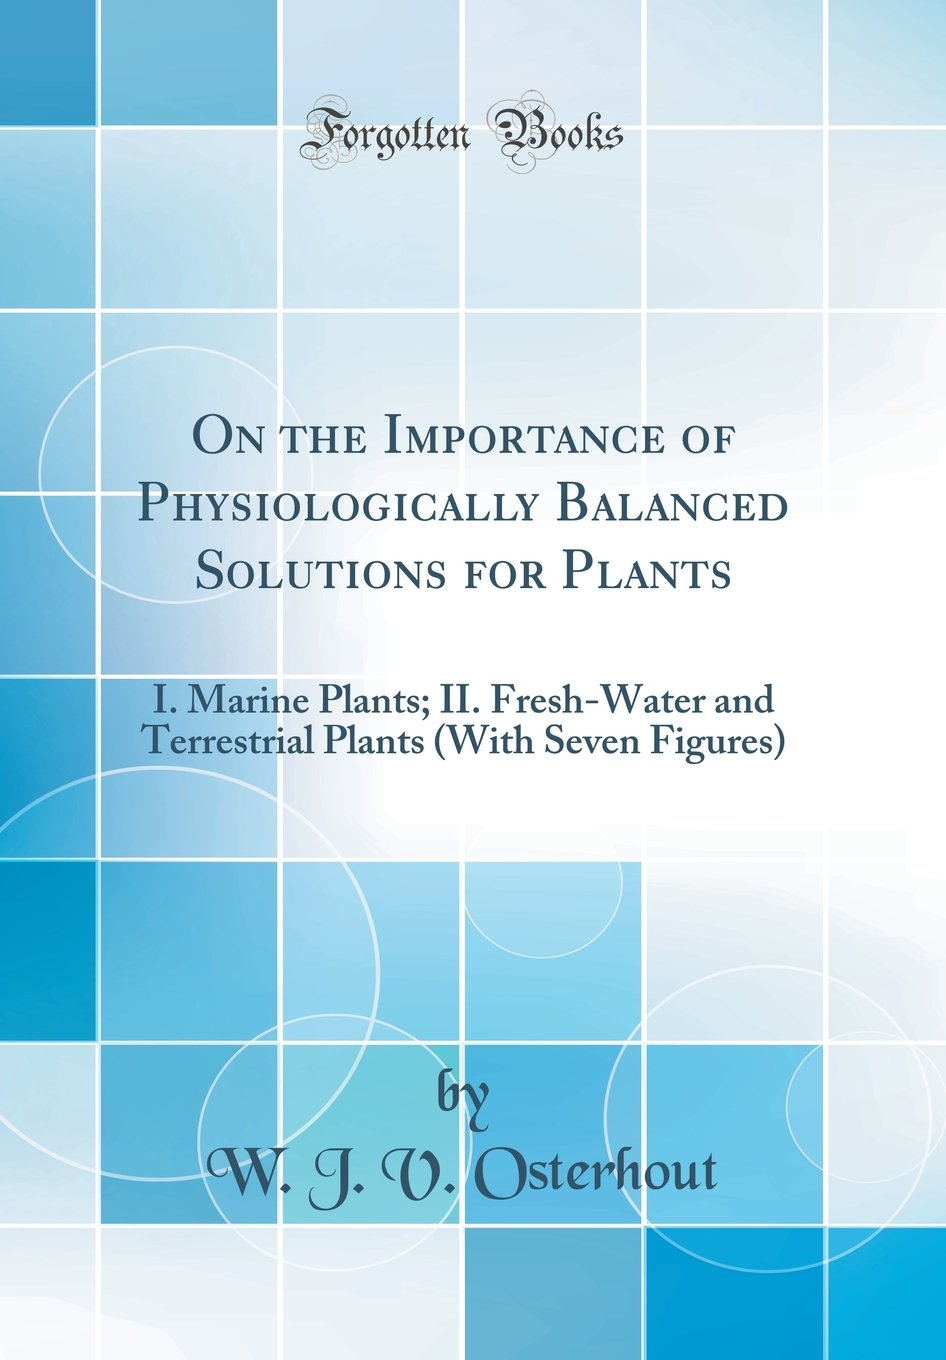 On the Importance of Physiologically Balanced Solutions for Plants: I. Marine Plants; II. Fresh-Water and Terrestrial Plants (With Seven Figures) (Classic Reprint) ebook